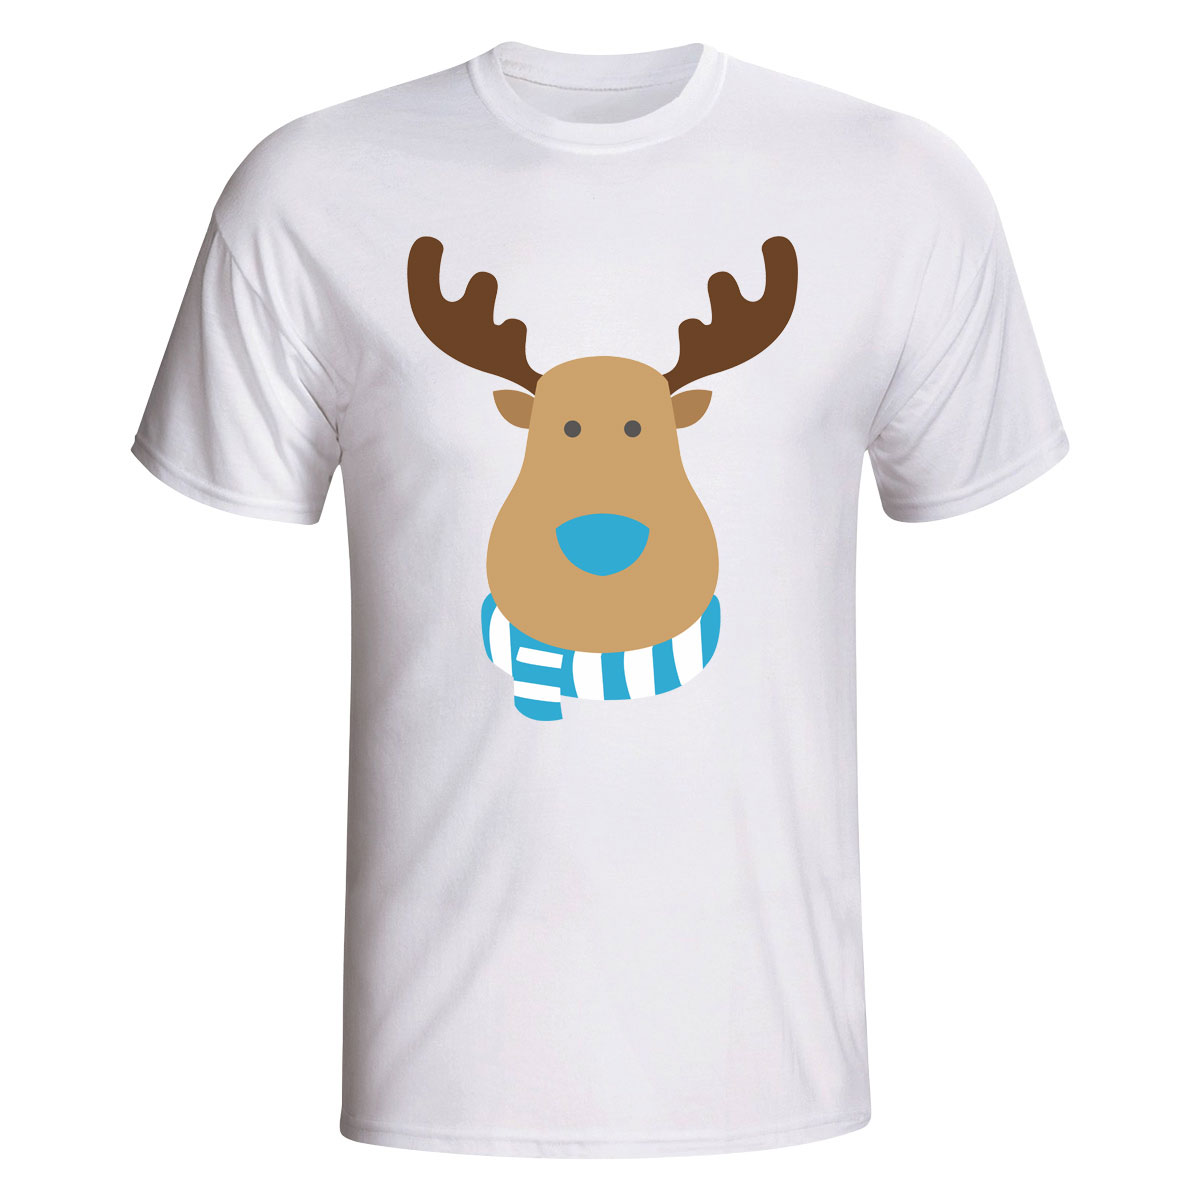 New York City Rudolph Supporters T-shirt (white) - Kids ... c415003c638